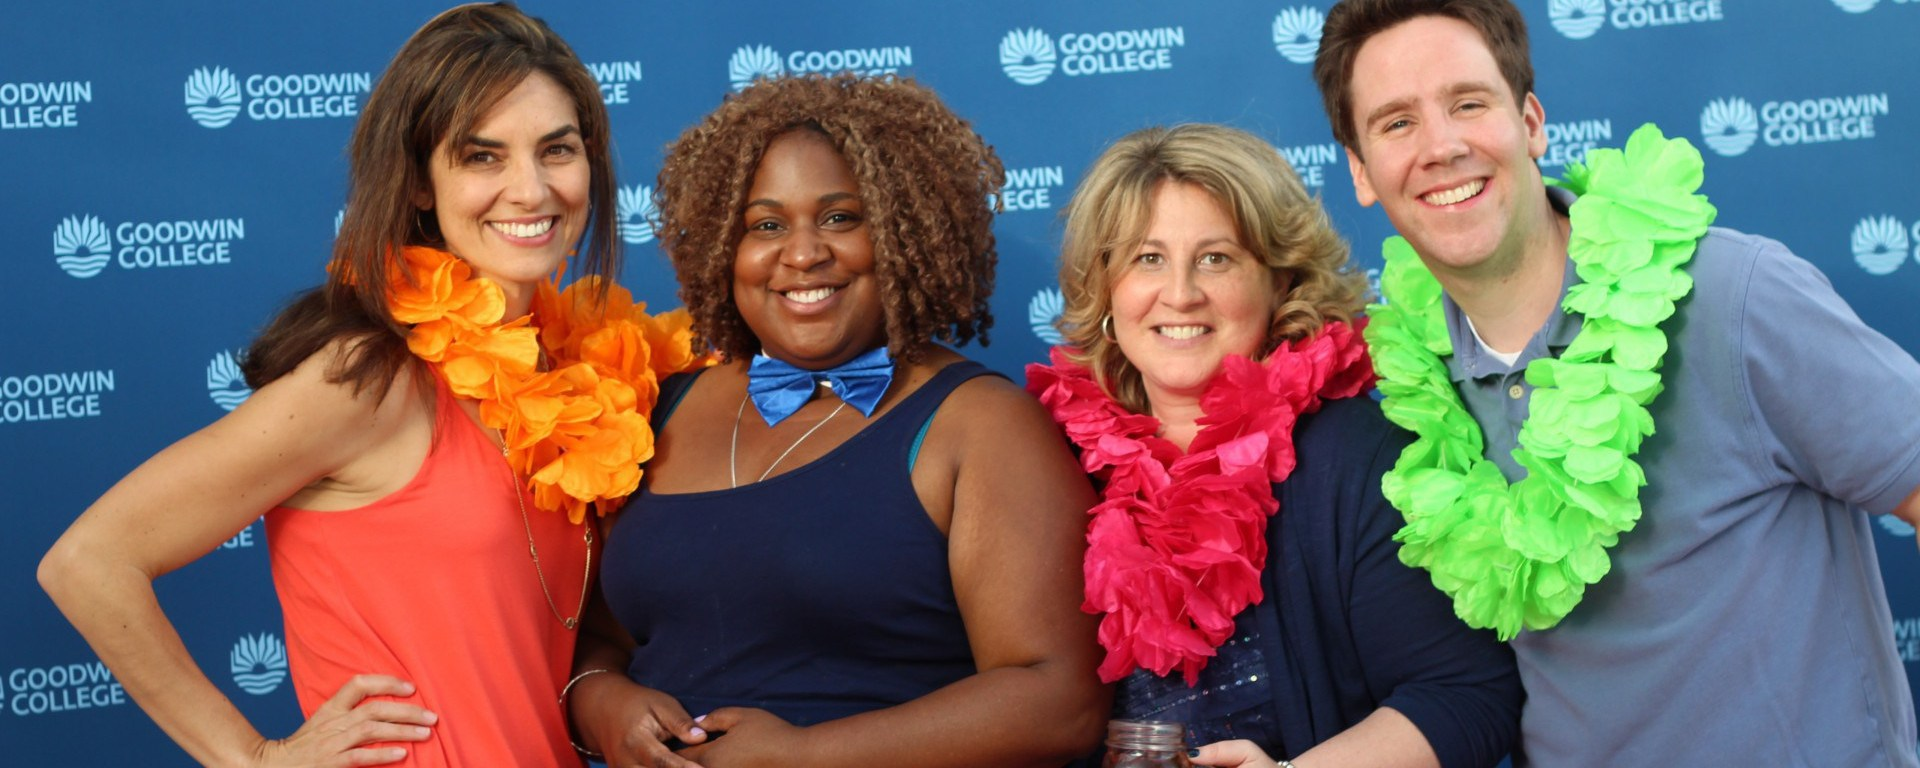 2015 Goodwin College Clambake